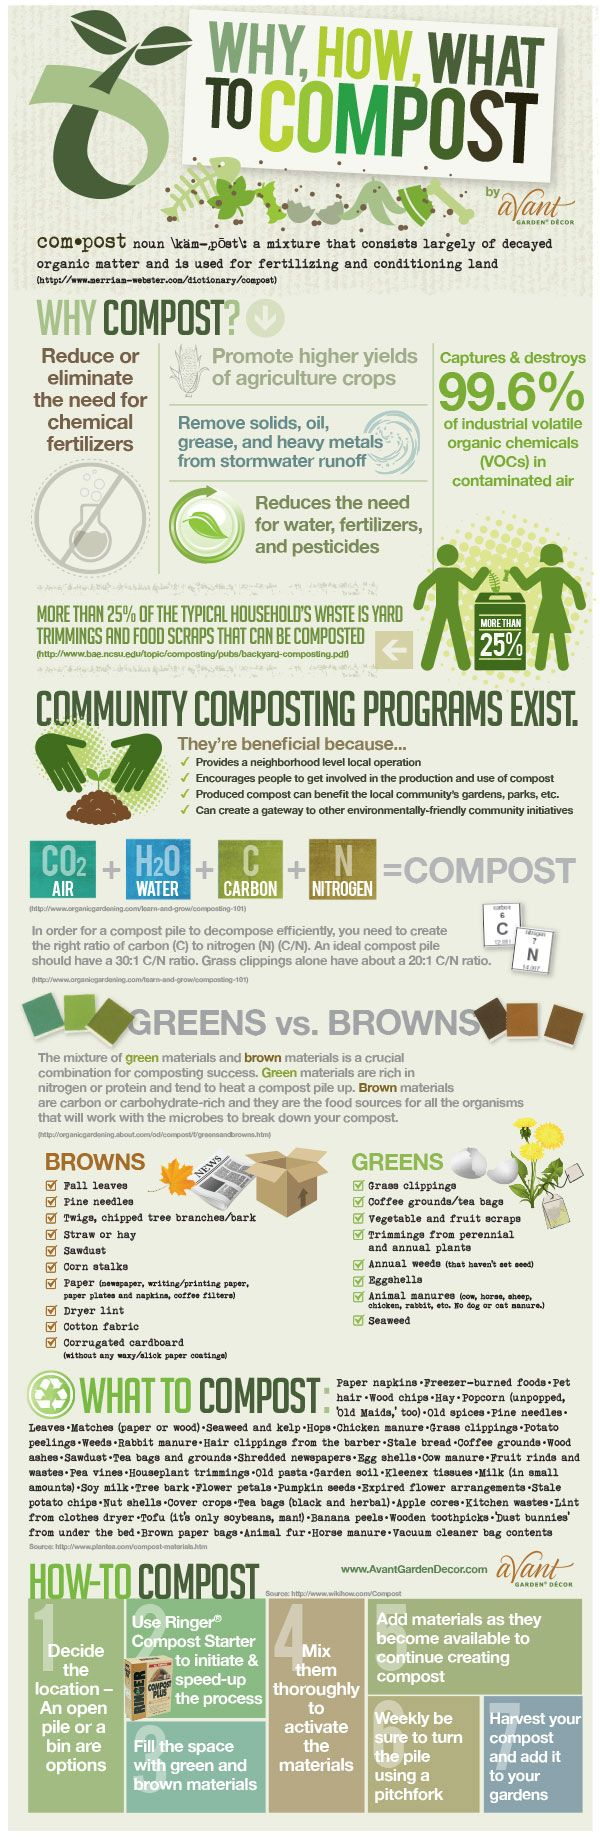 Why, how, what to compost [Infographic]